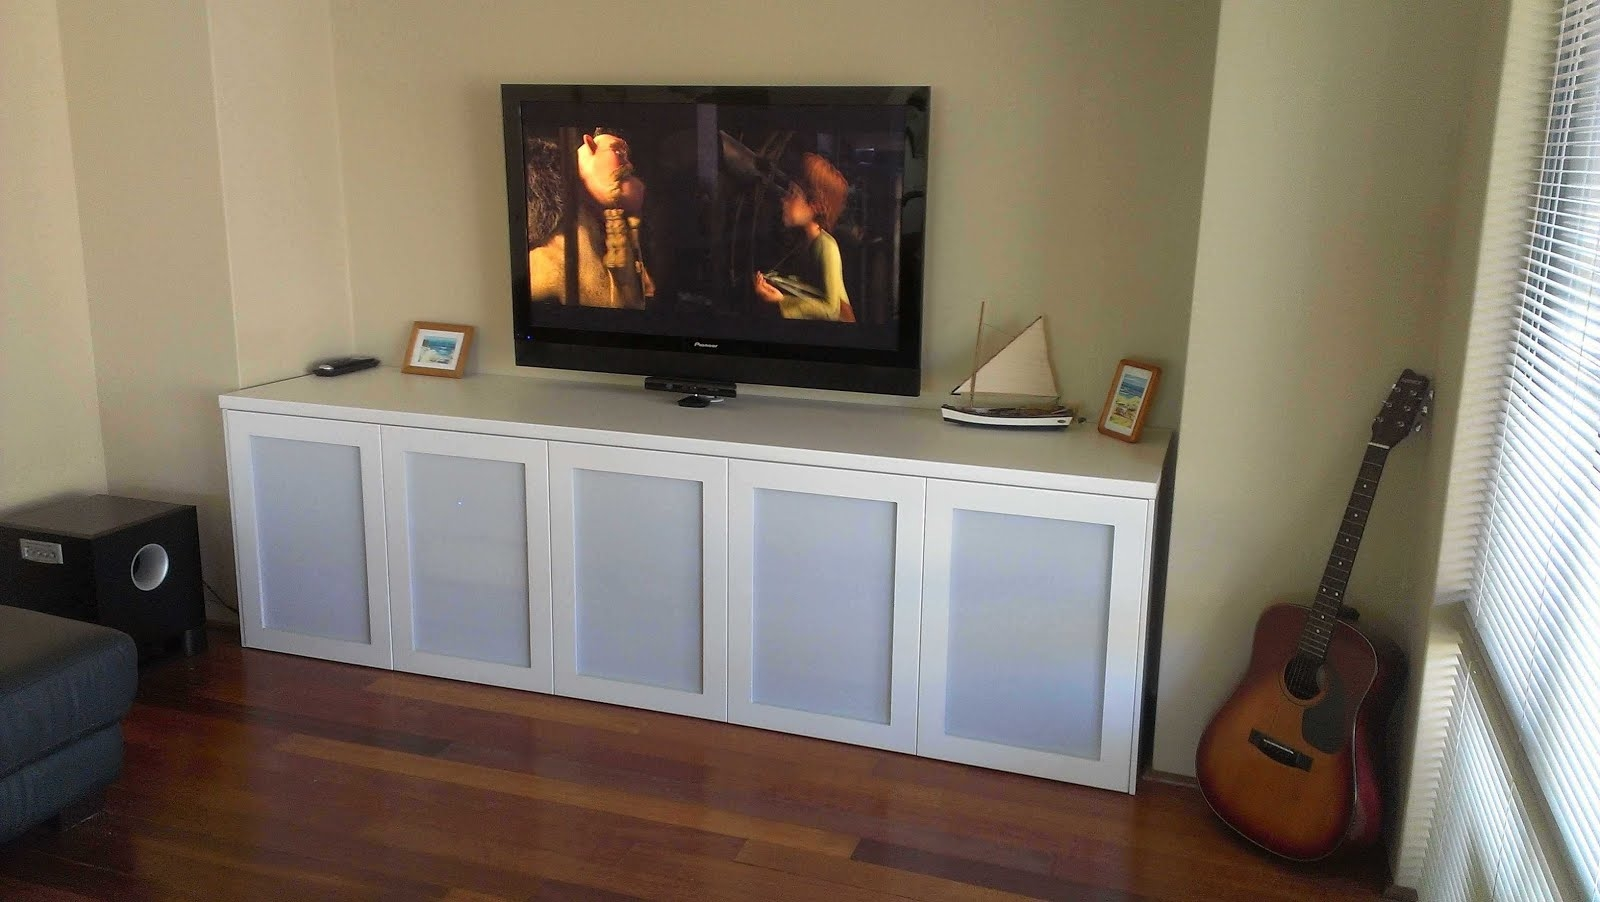 Carlyle Tall Large Tv Stand W371 48 Etc Pinterest Nice Tvs Inside Bespoke Tv Stand (View 14 of 15)